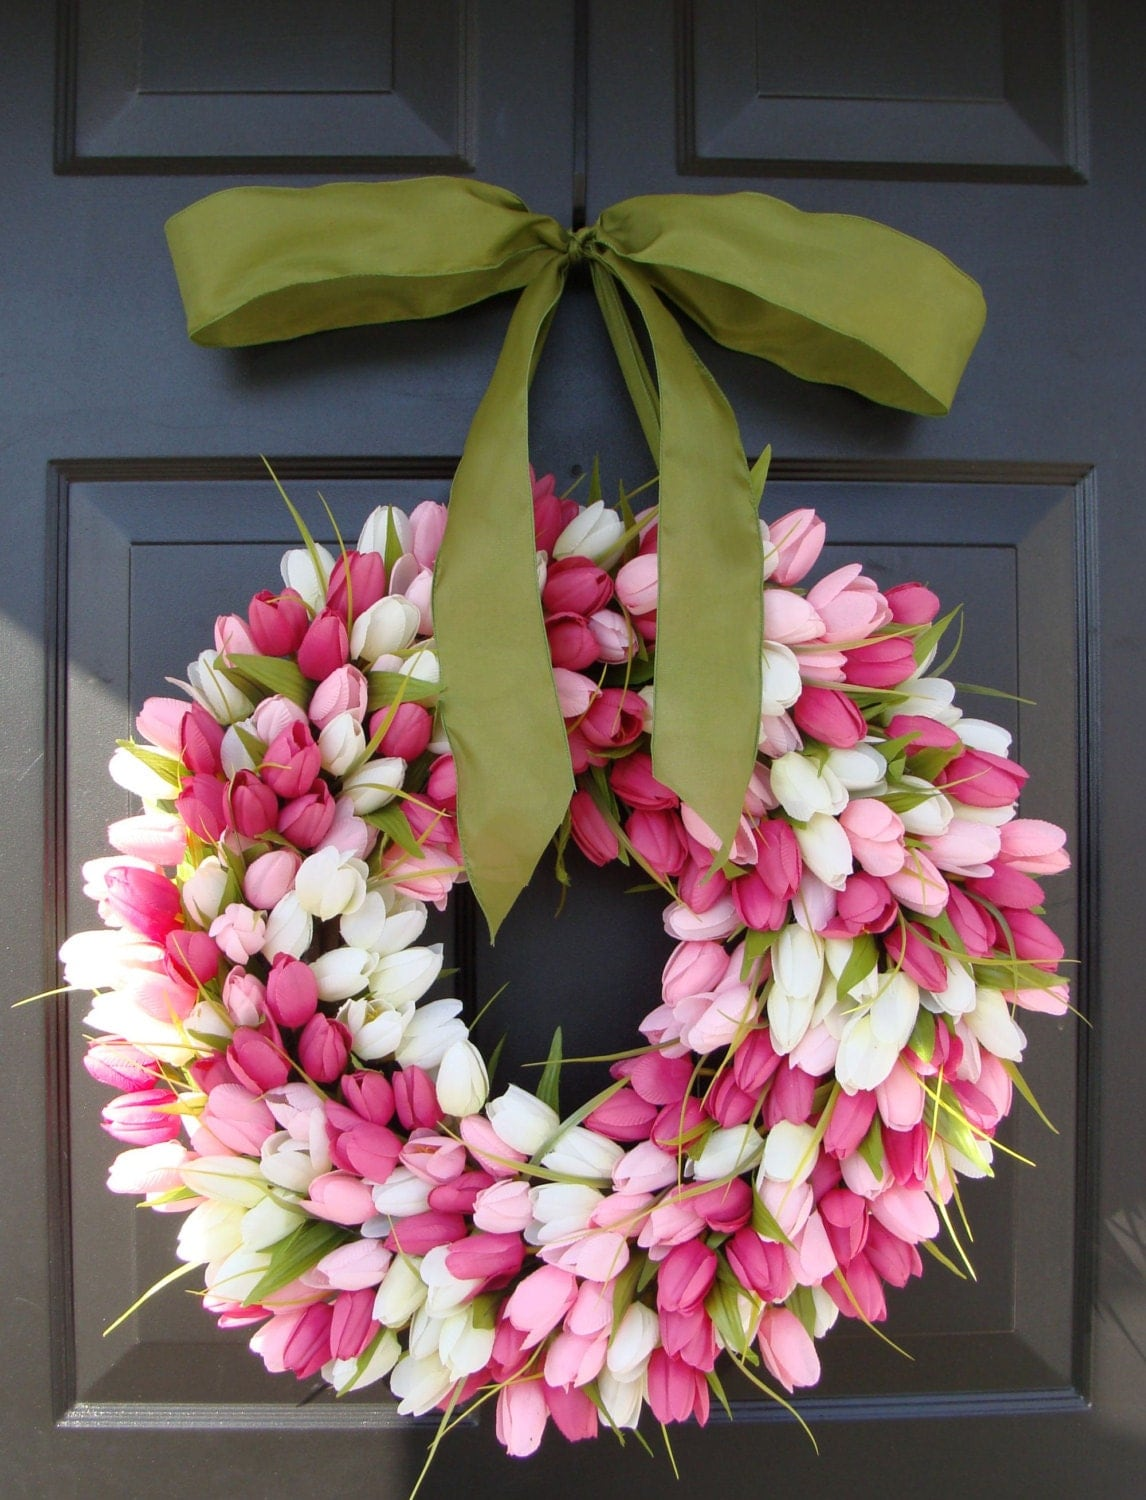 20 inch Spring Wreath- Easter Decor- Gift for Her- Mothers Day Gift- Easter Decoration- Outdoor Wreath- Burlap Wreath - elegantholidays